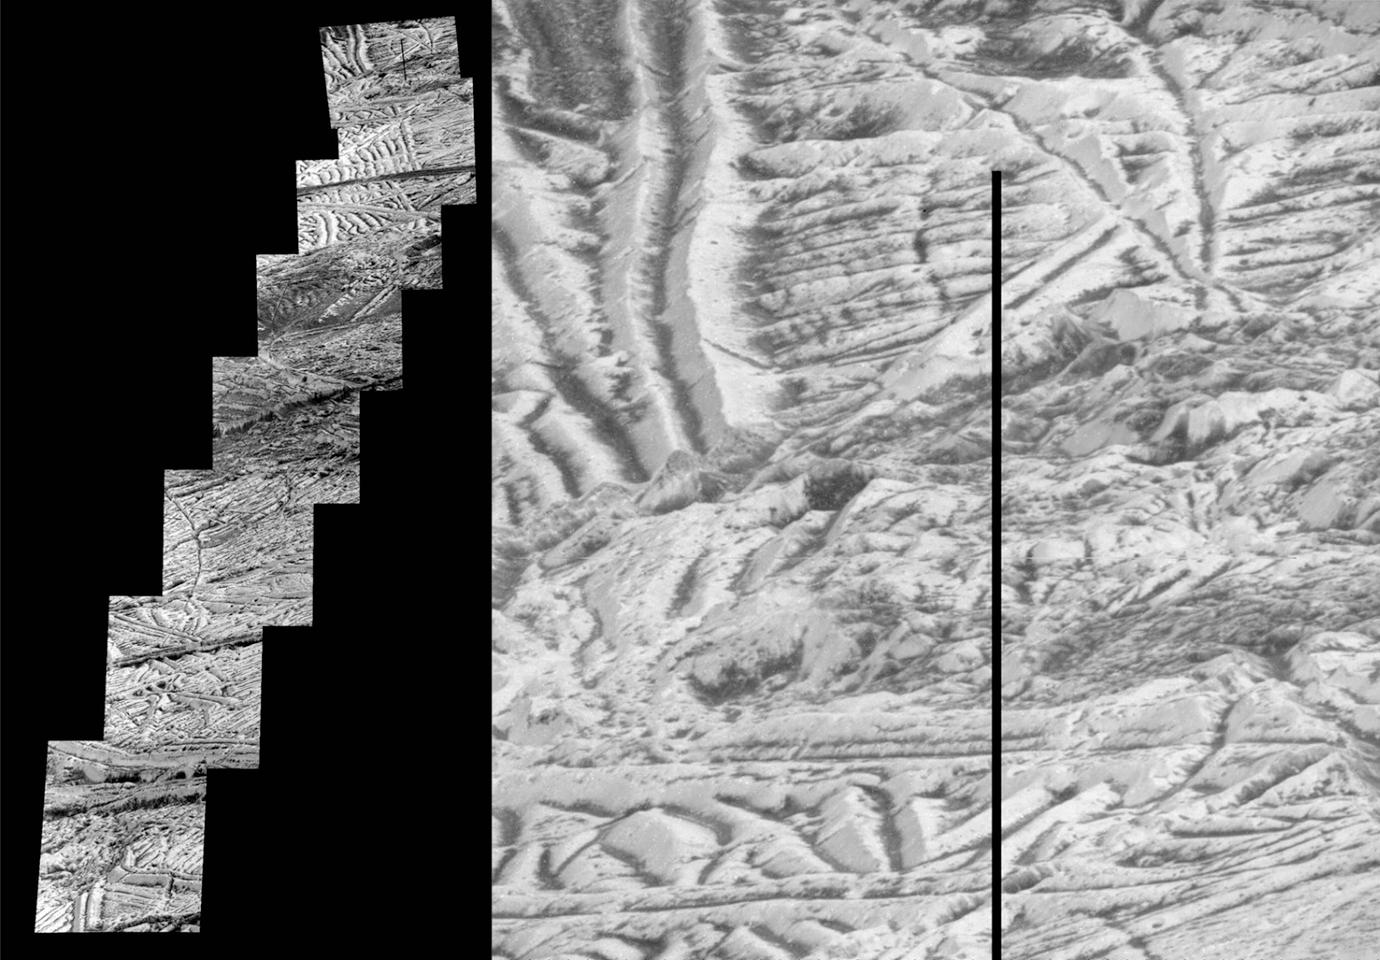 Mosaic of detailed images of Europa sent back by NASA's Galileo mission